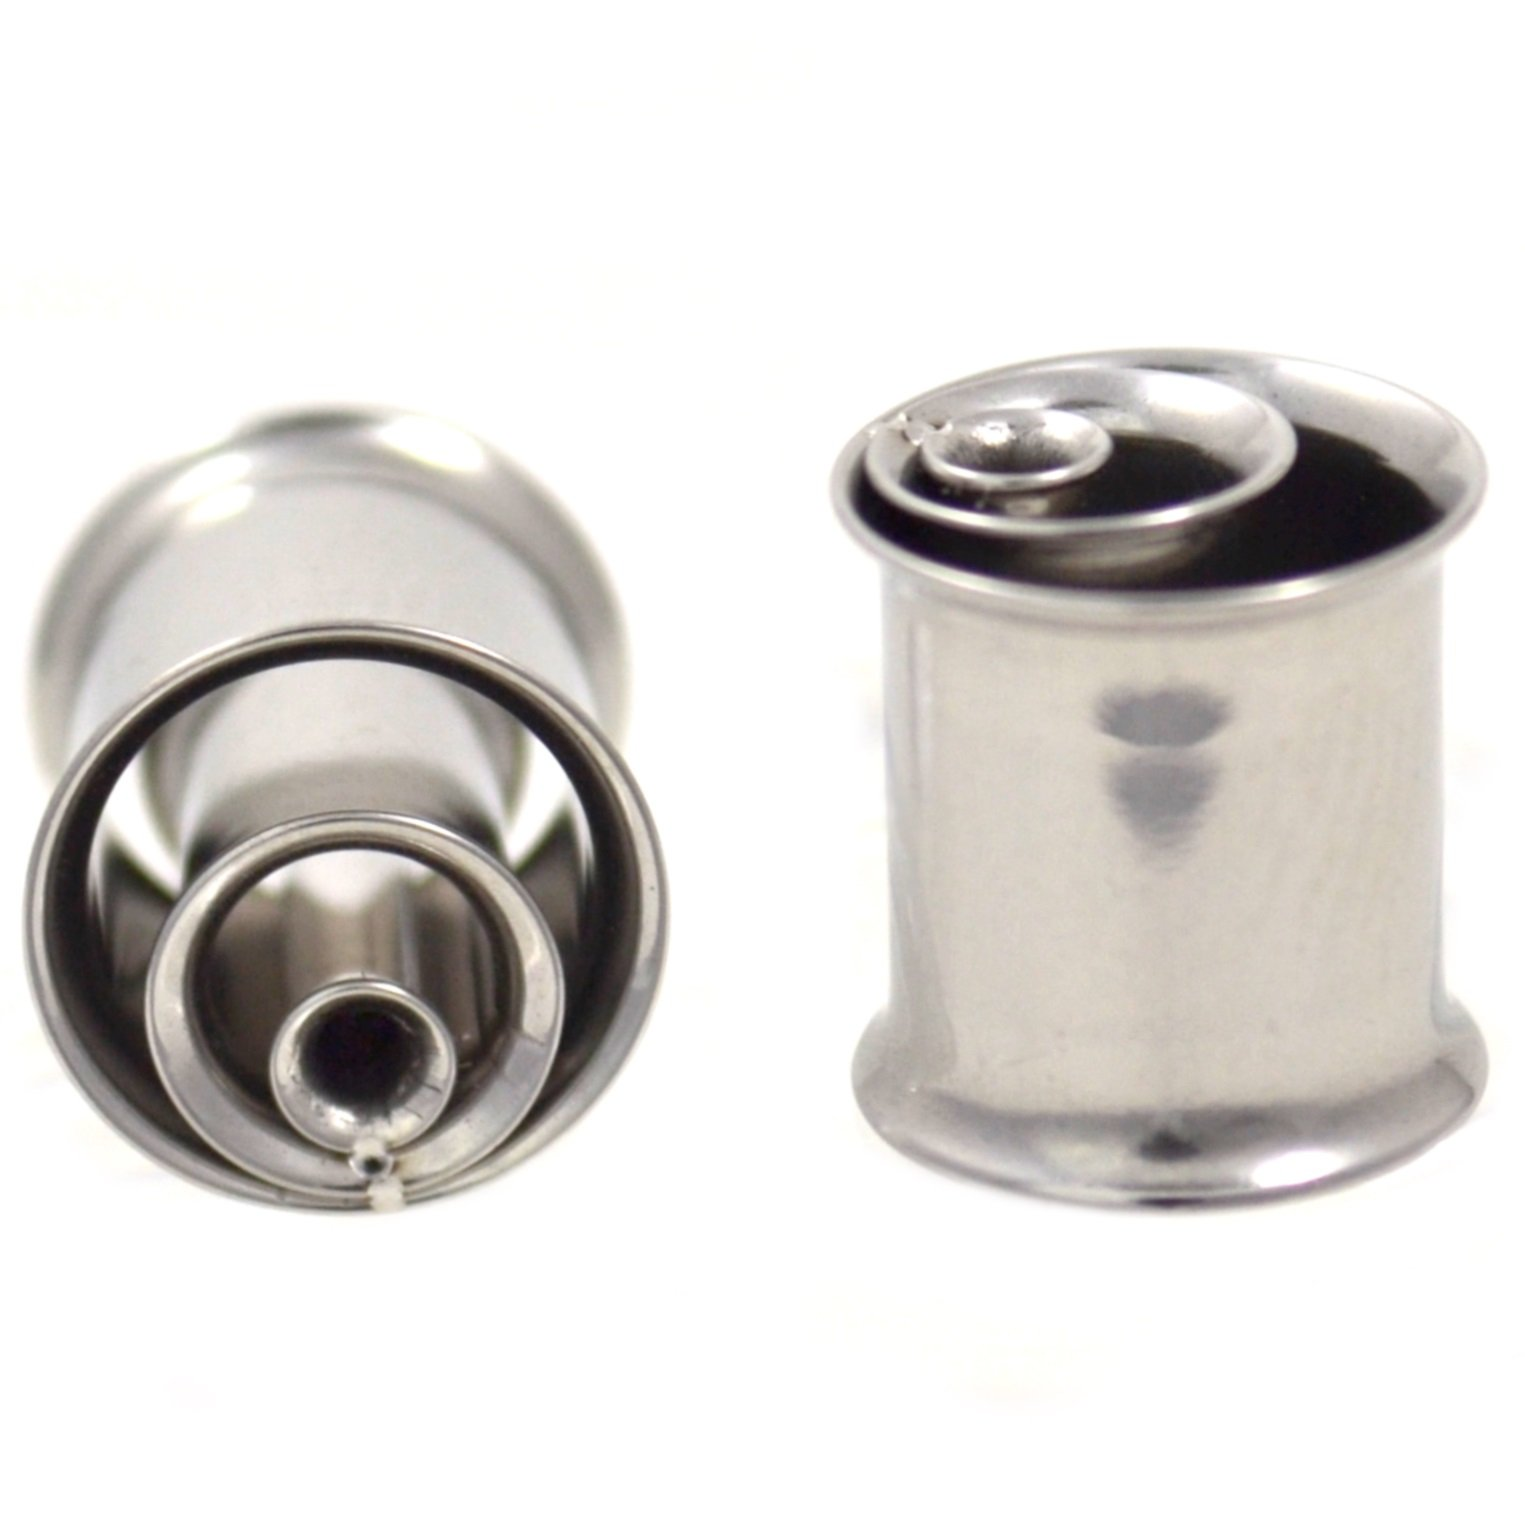 Pair (2) Steel Hypnotic Inner Rings Ear Plugs Unique Double Flared Stainless Tunnels - 1/2'' 12MM